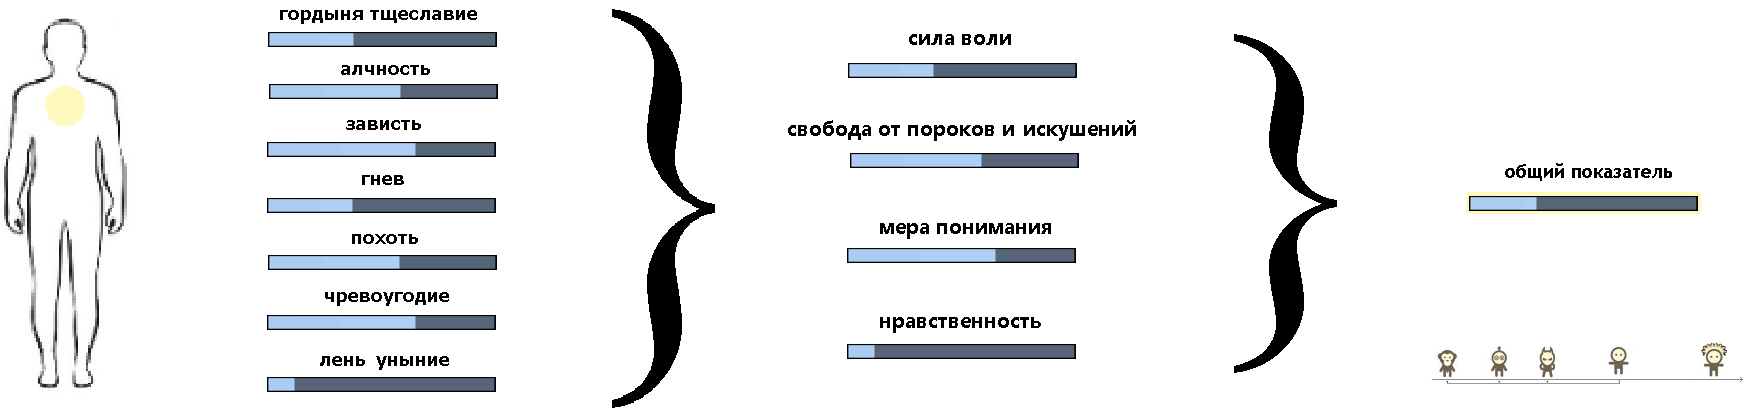 http://forumstatic.ru/files/0017/52/02/32123.png